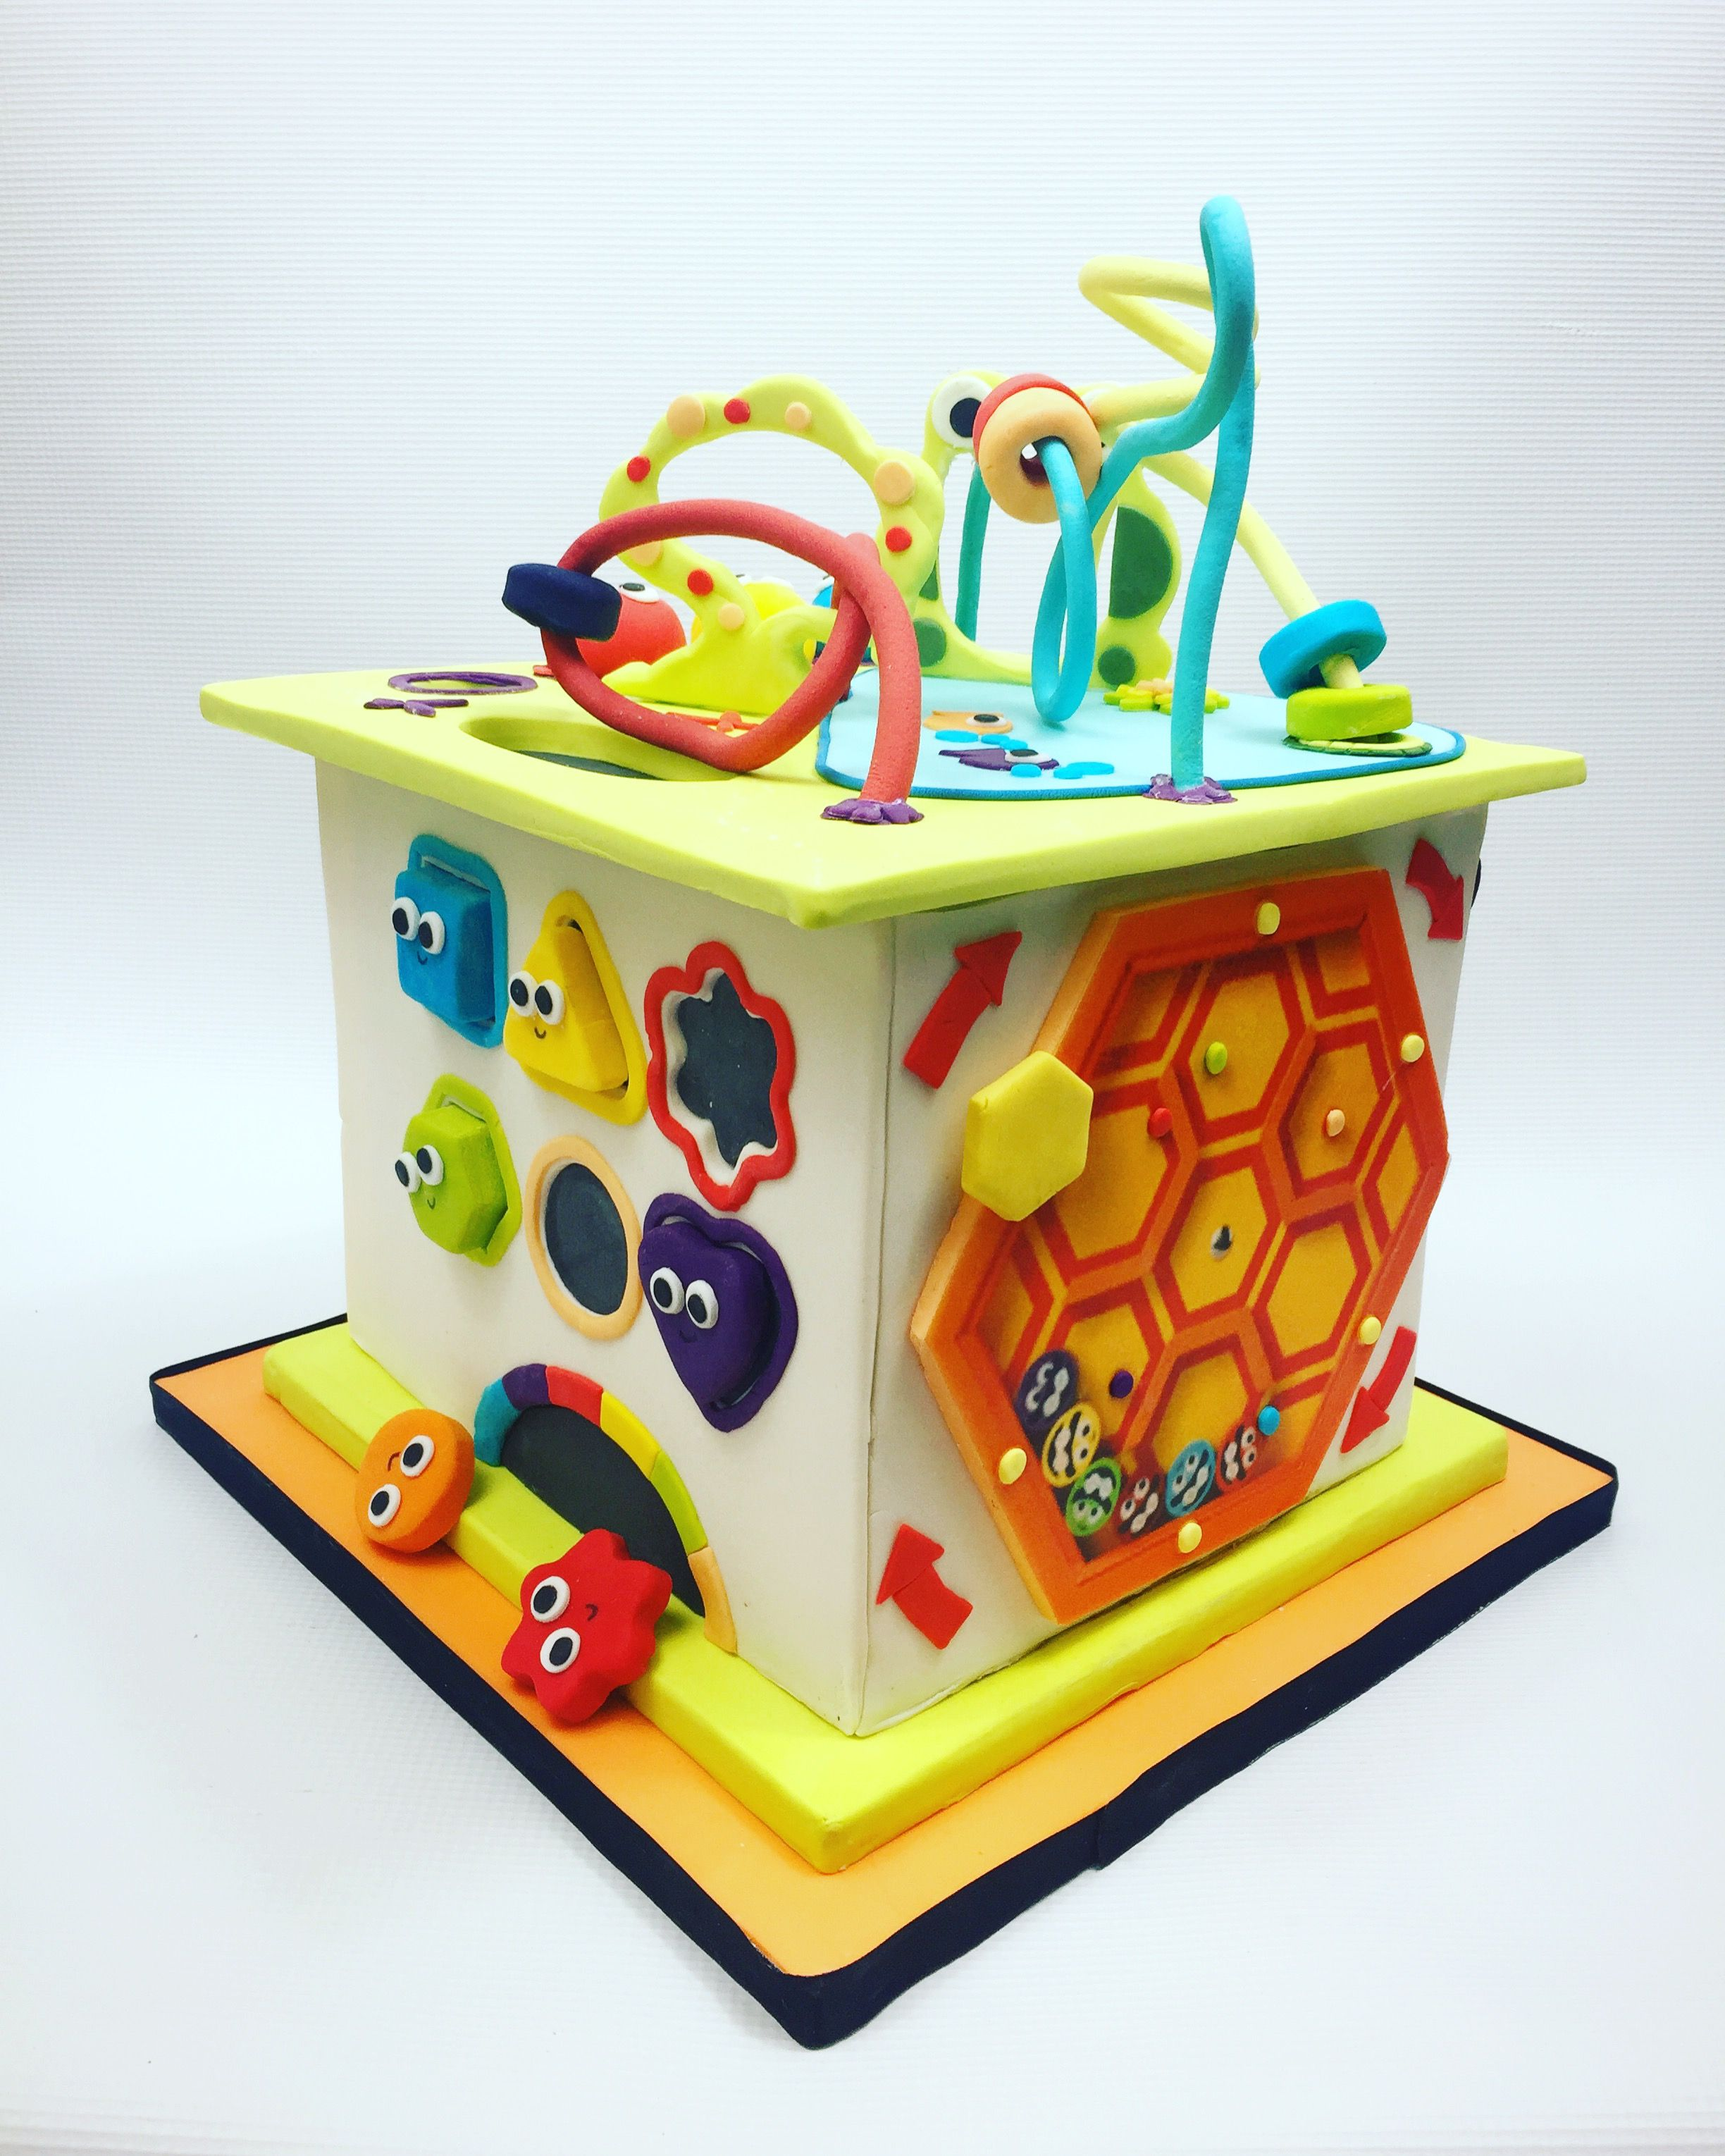 Hape Toy Box Cake By Olivias Boutique New Design Designs Kids